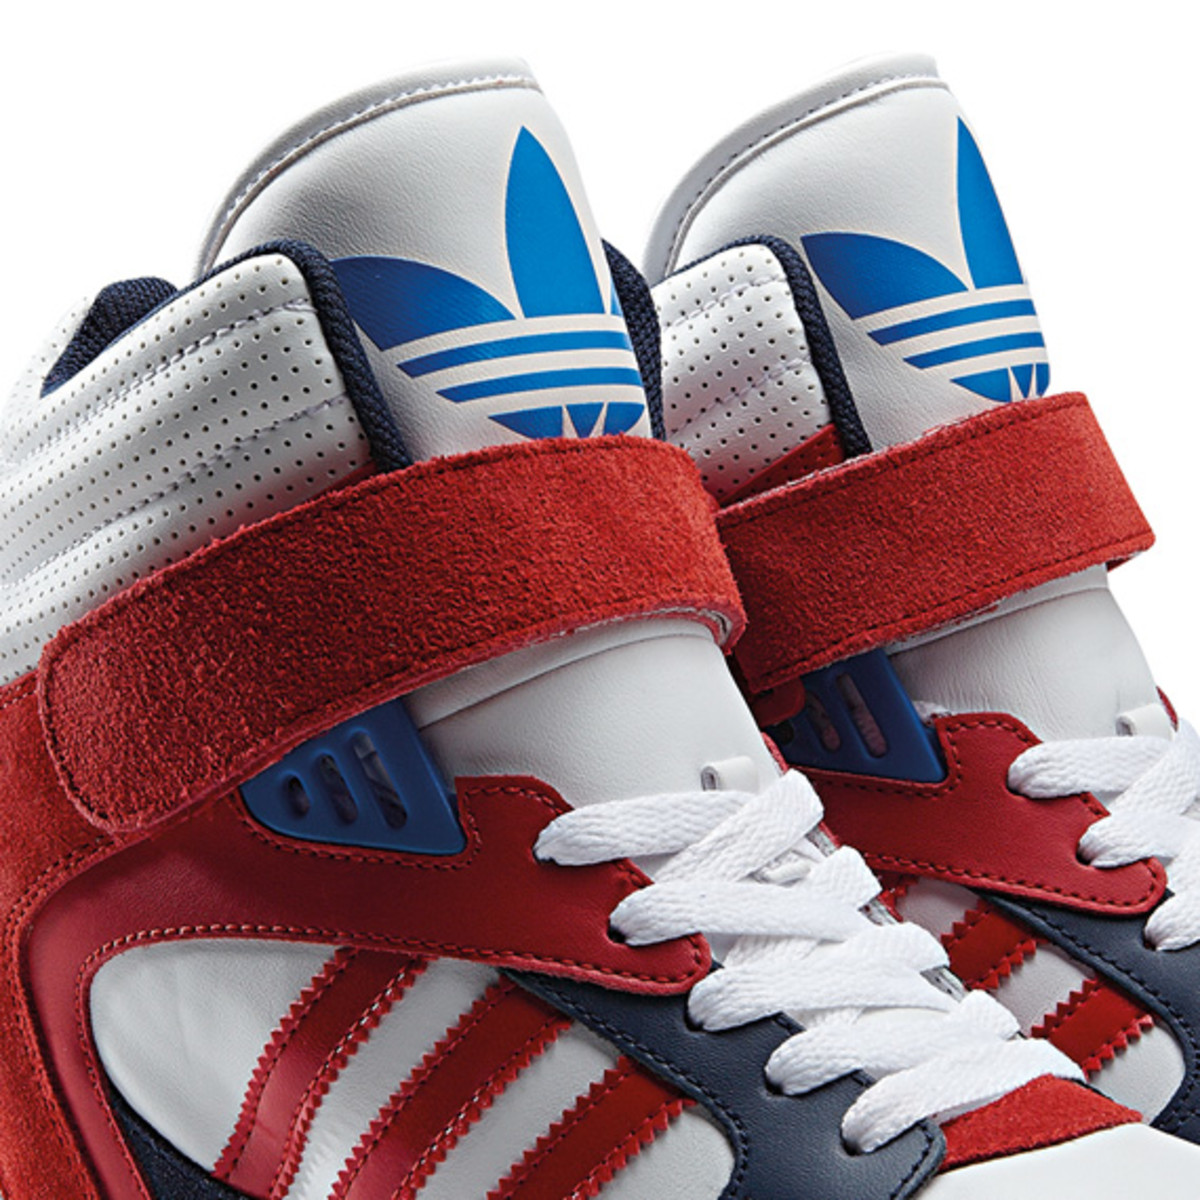 adidas-originals-womens-amberlight-up-sneaker-wedge-fall-winter-2013-g95641-02